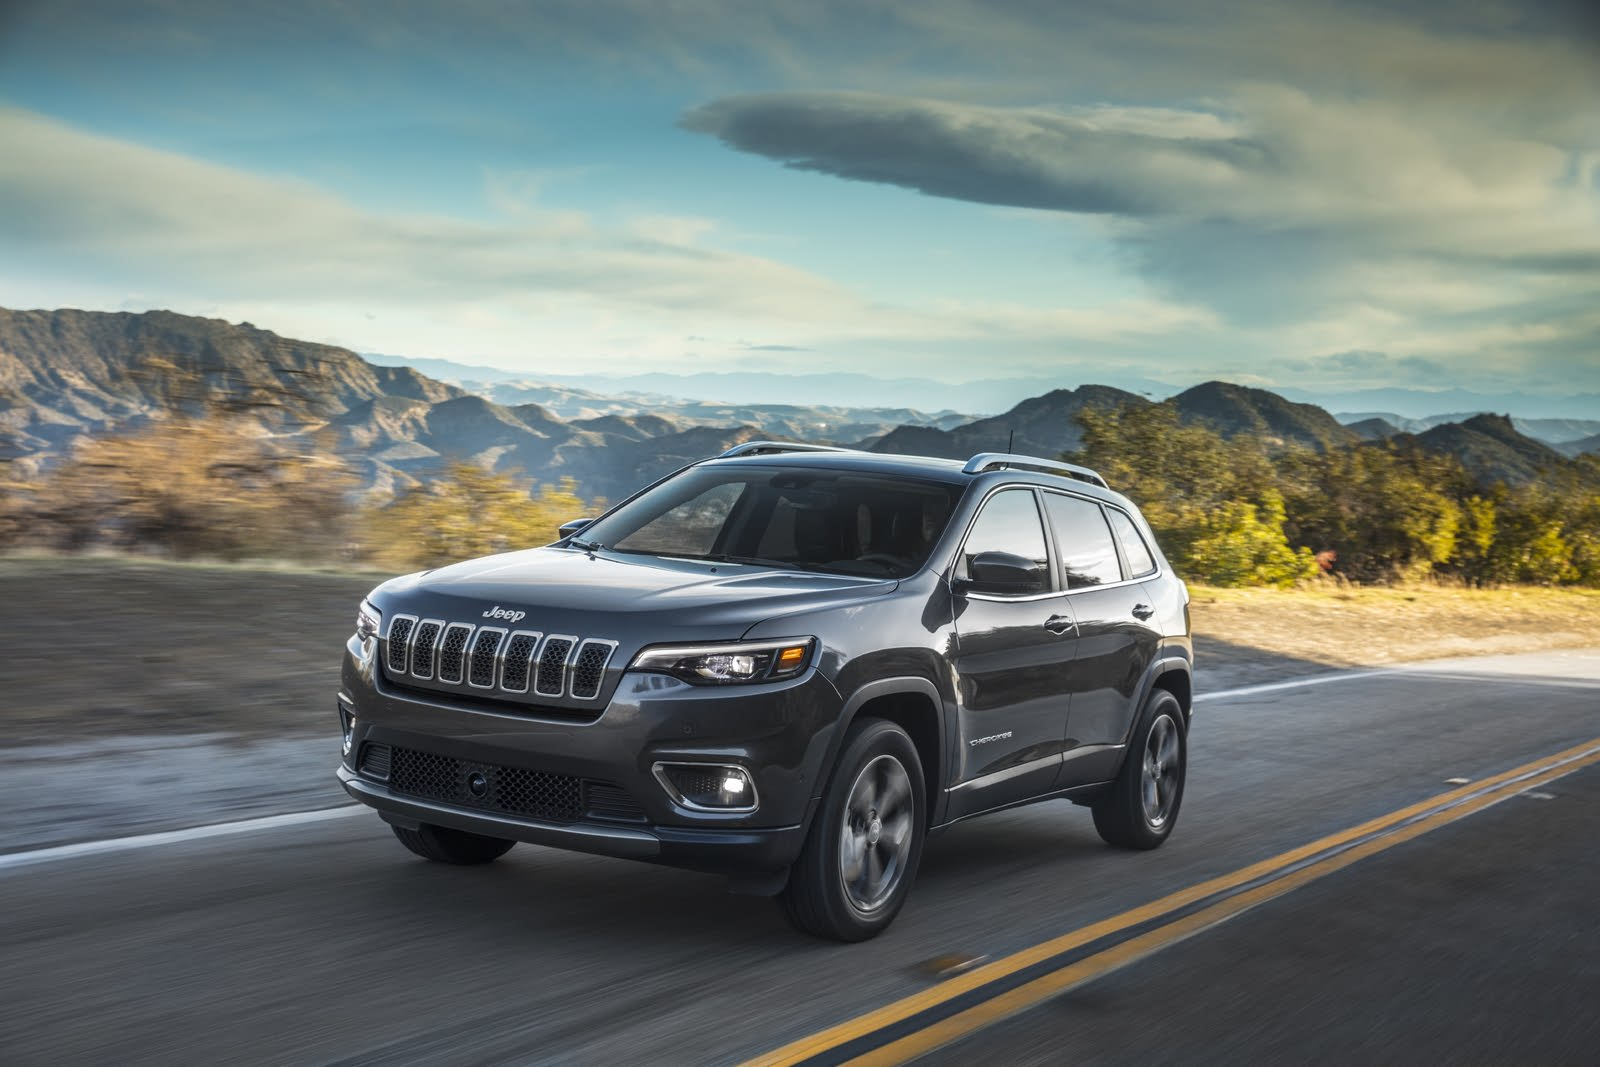 2020 Jeep Cherokee Review.2020 Jeep Cherokee Overview Cargurus